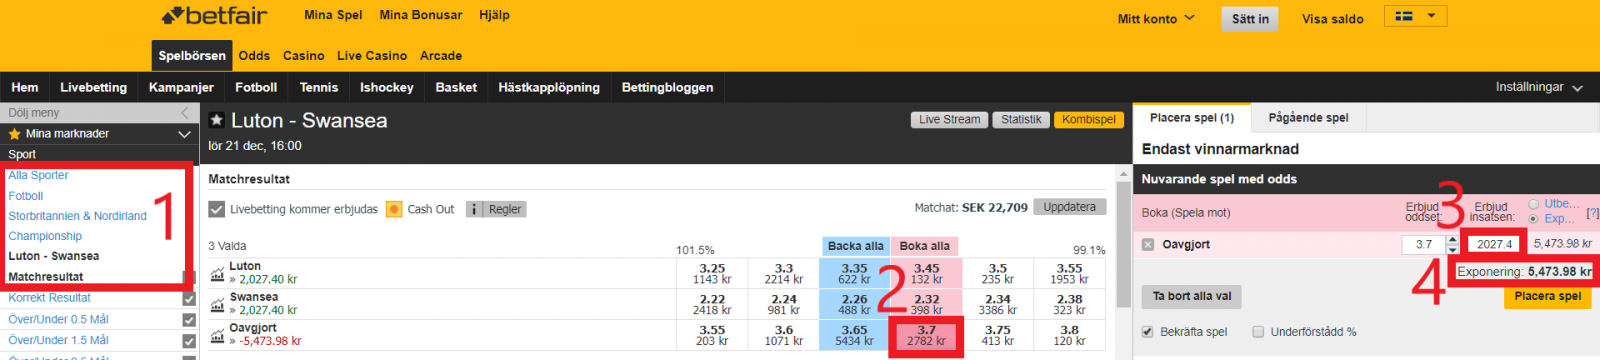 Guide placera spel betfair exchange